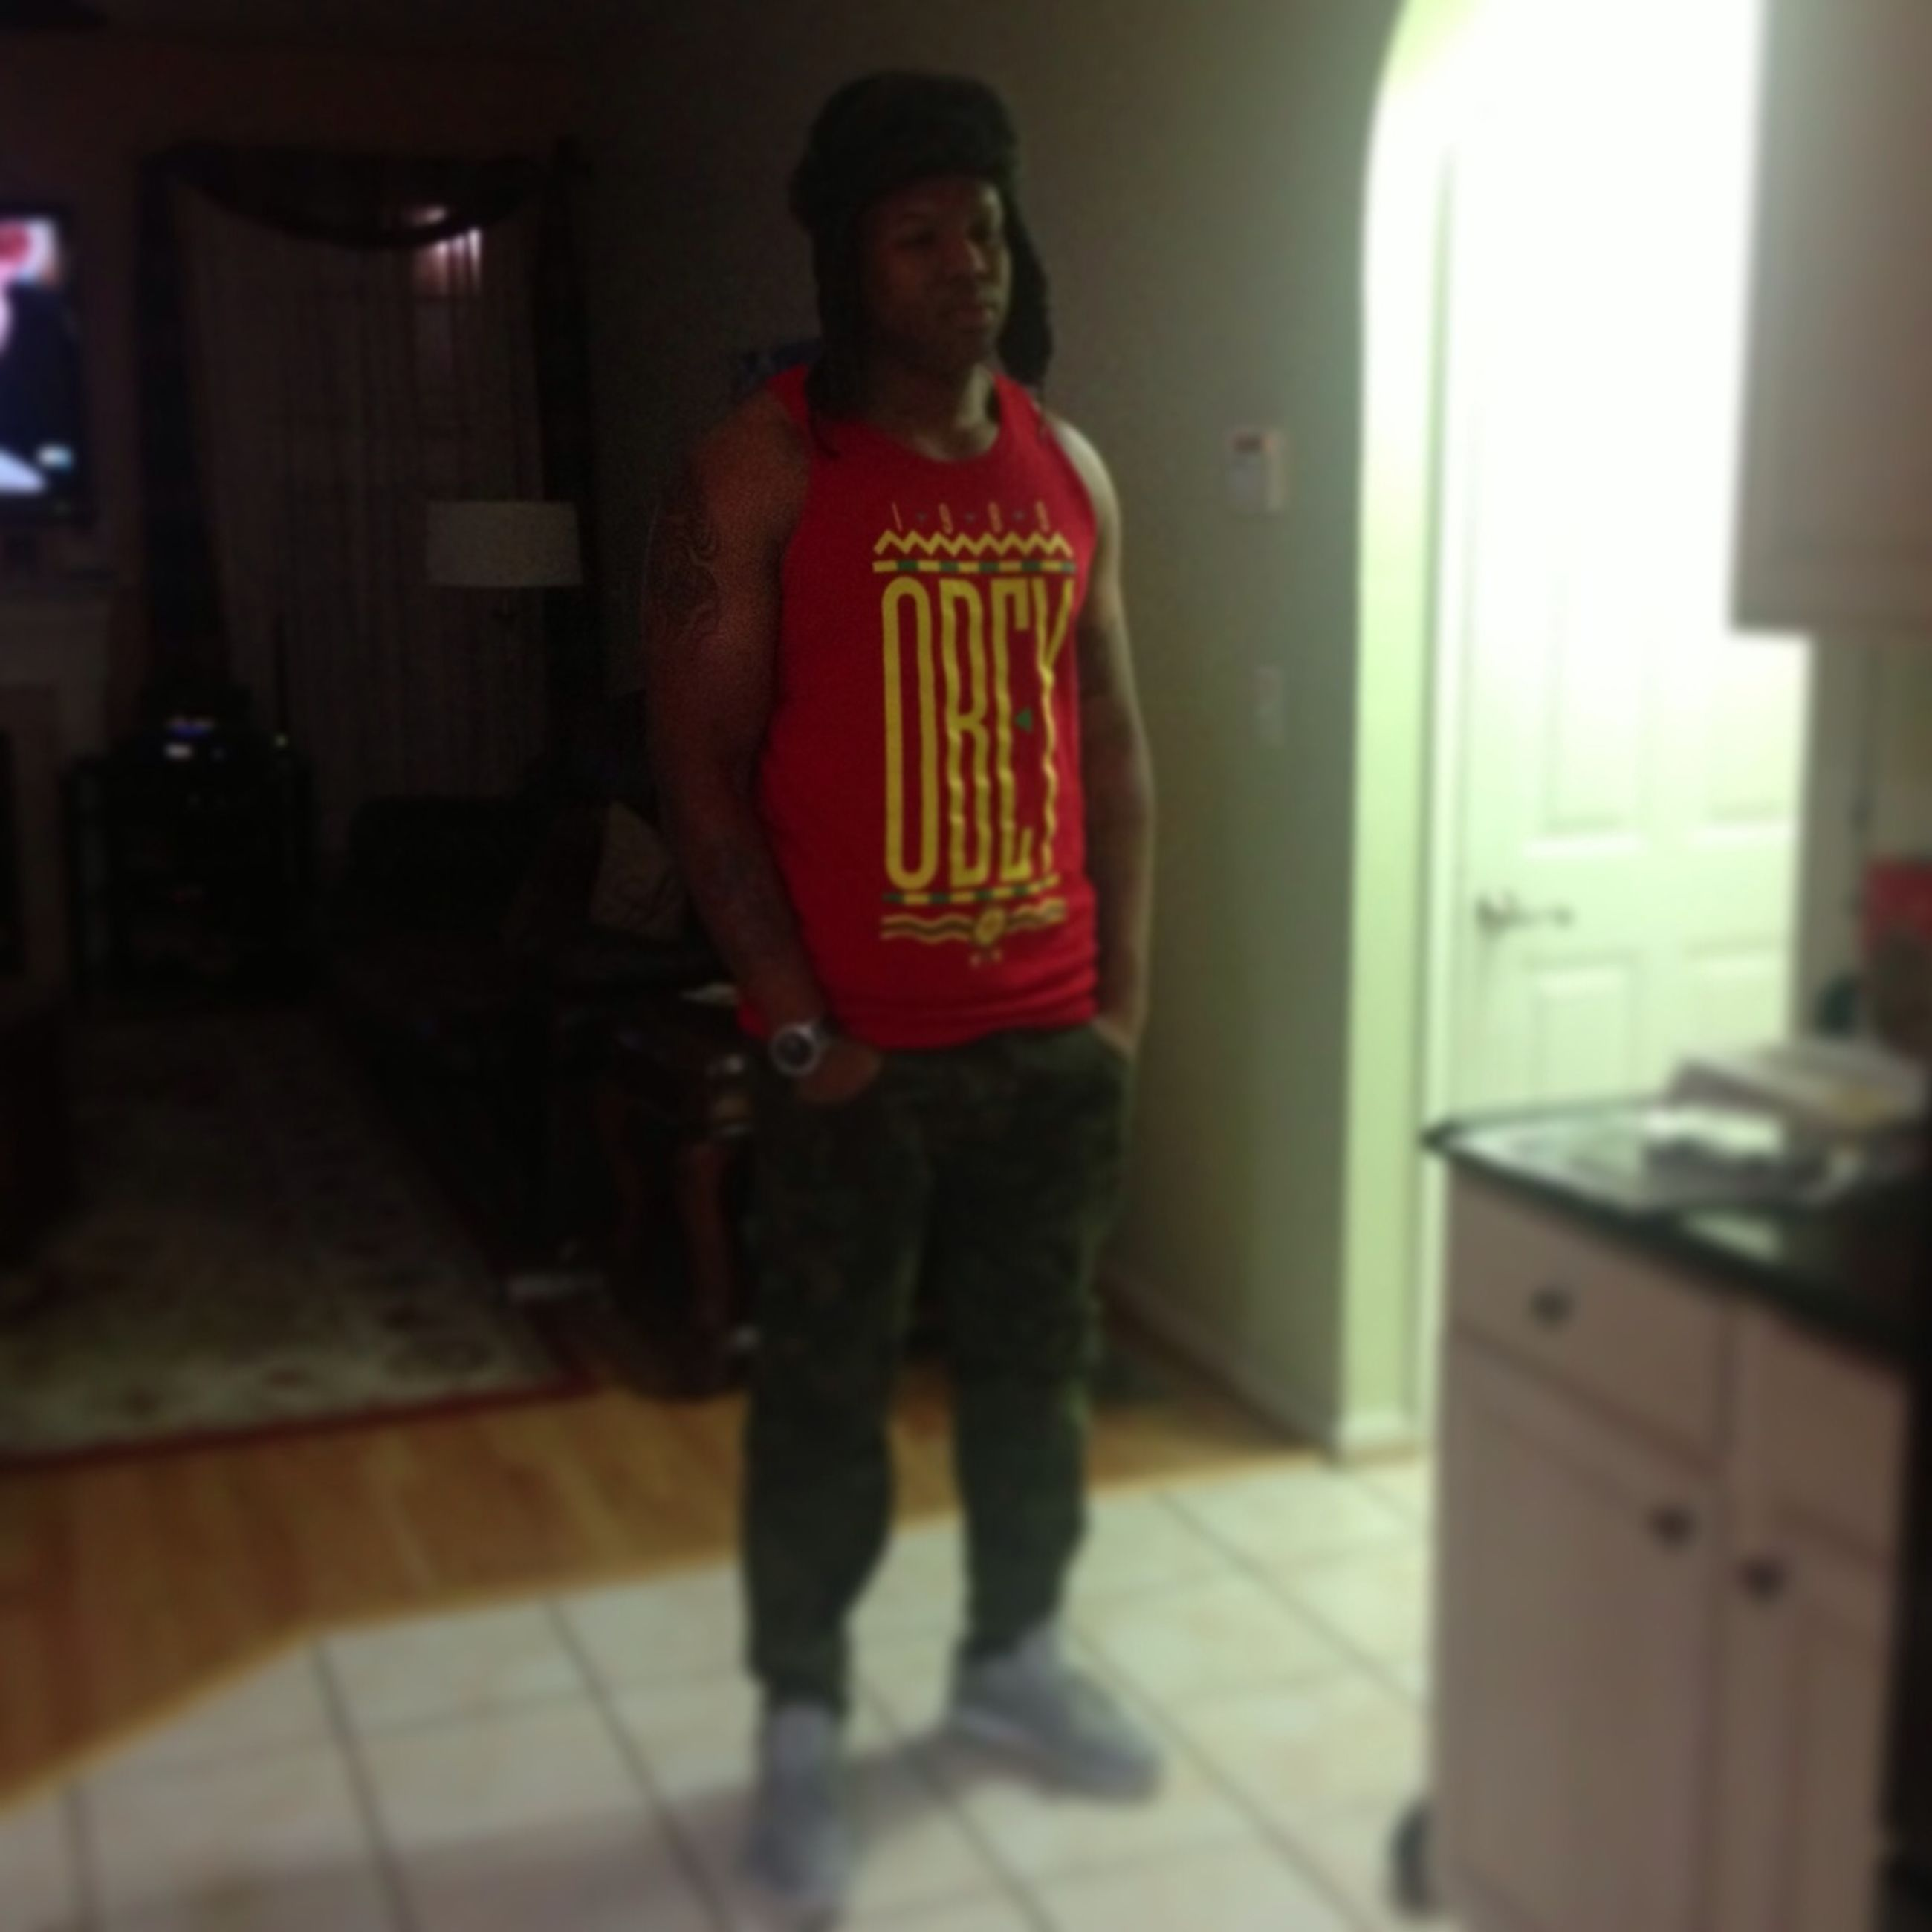 lifestyles, indoors, casual clothing, leisure activity, person, front view, young adult, looking at camera, full length, standing, portrait, three quarter length, young men, illuminated, home interior, night, holding